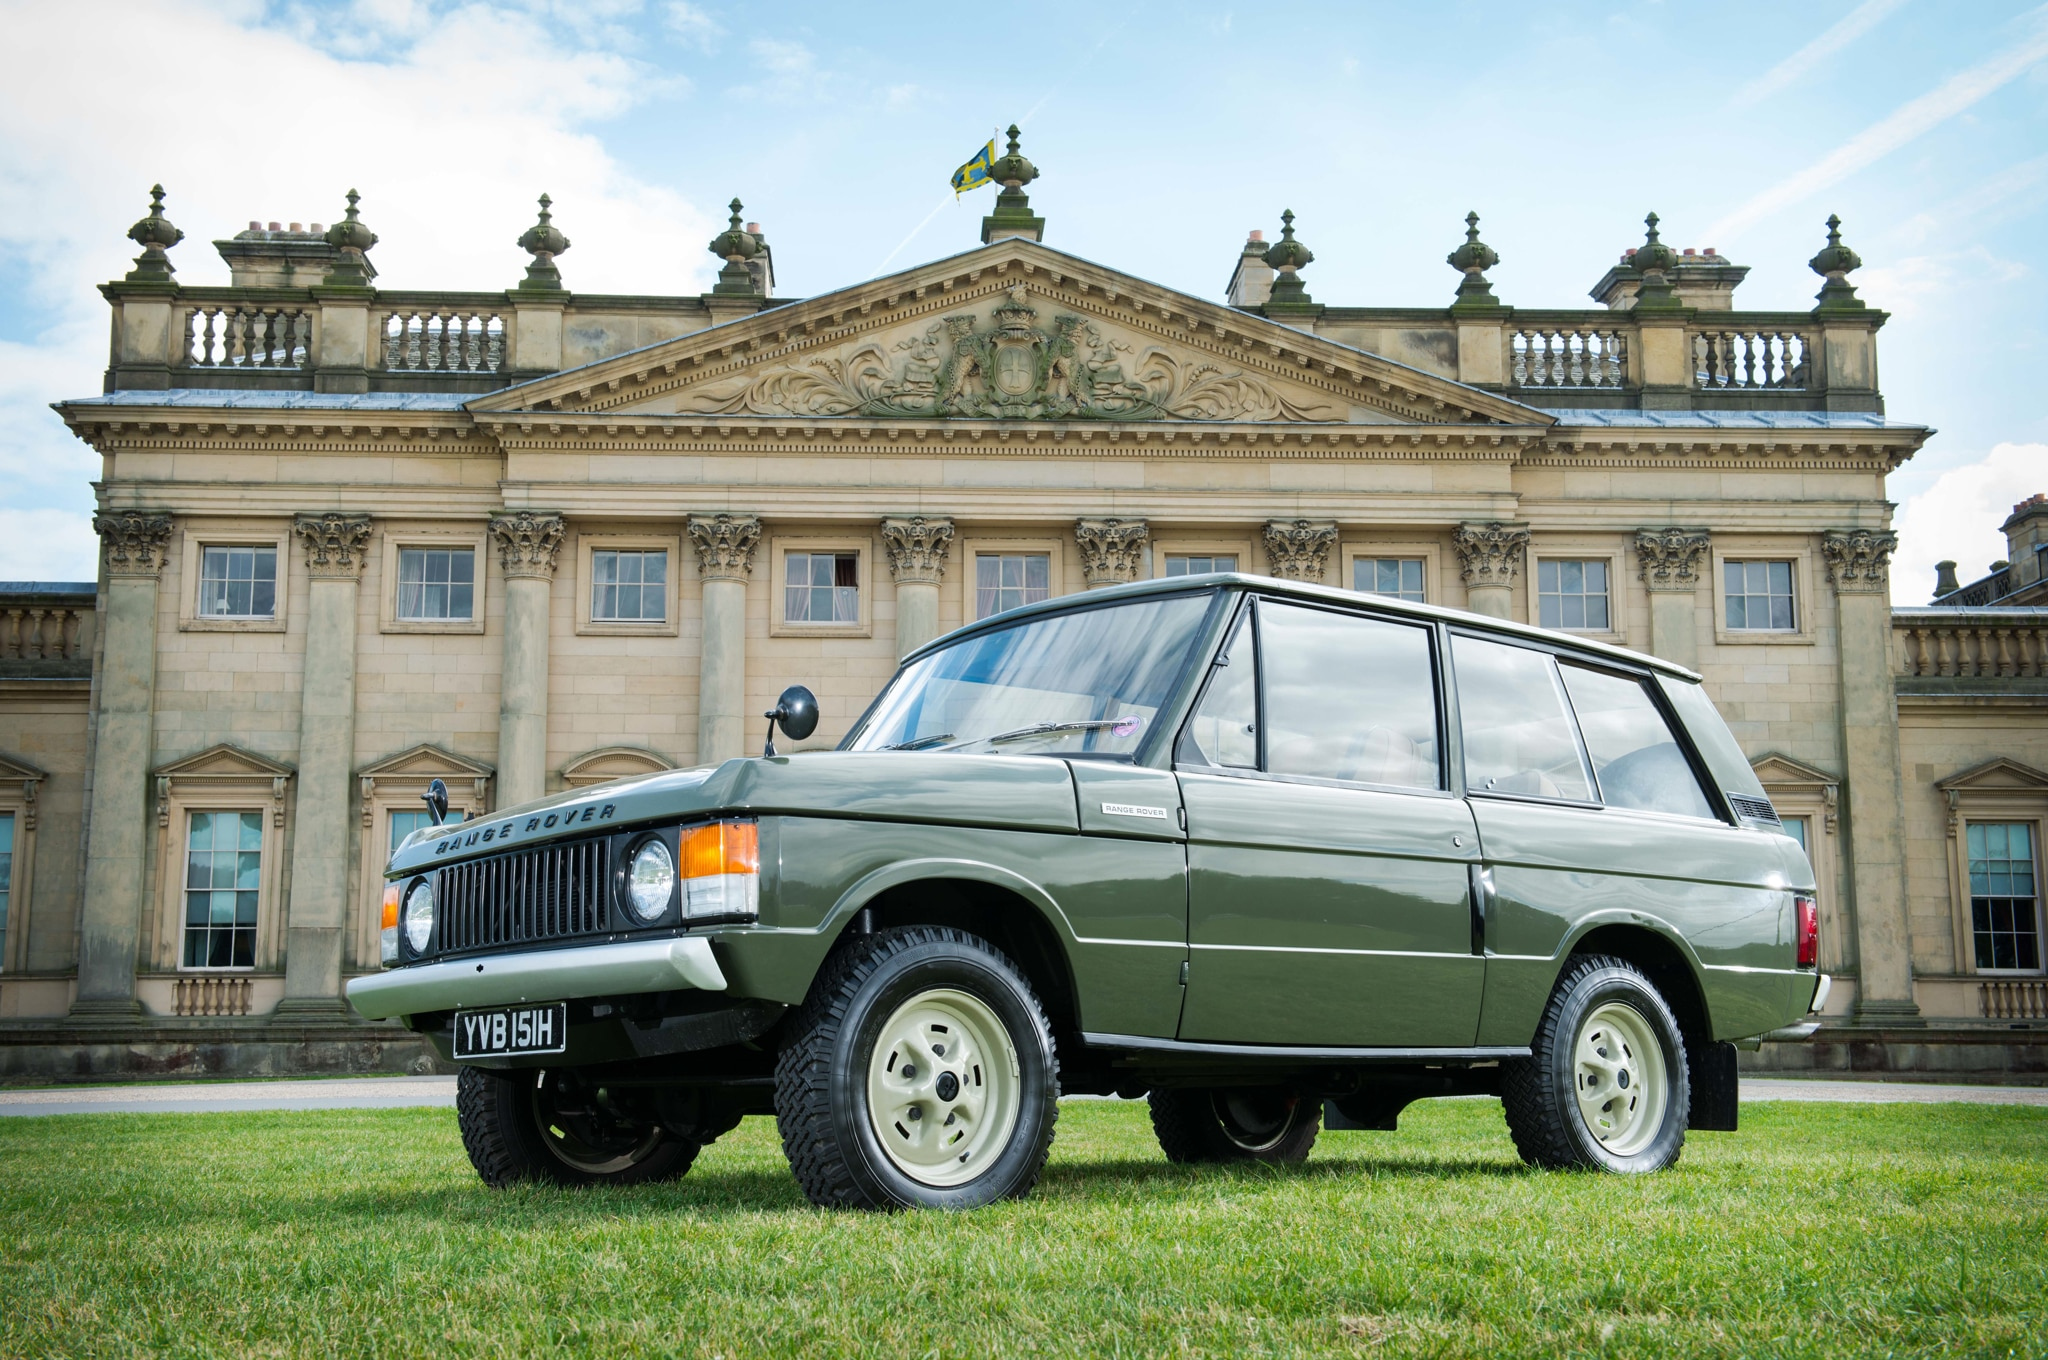 First Production 1970 Range Rover To Be Auctioned